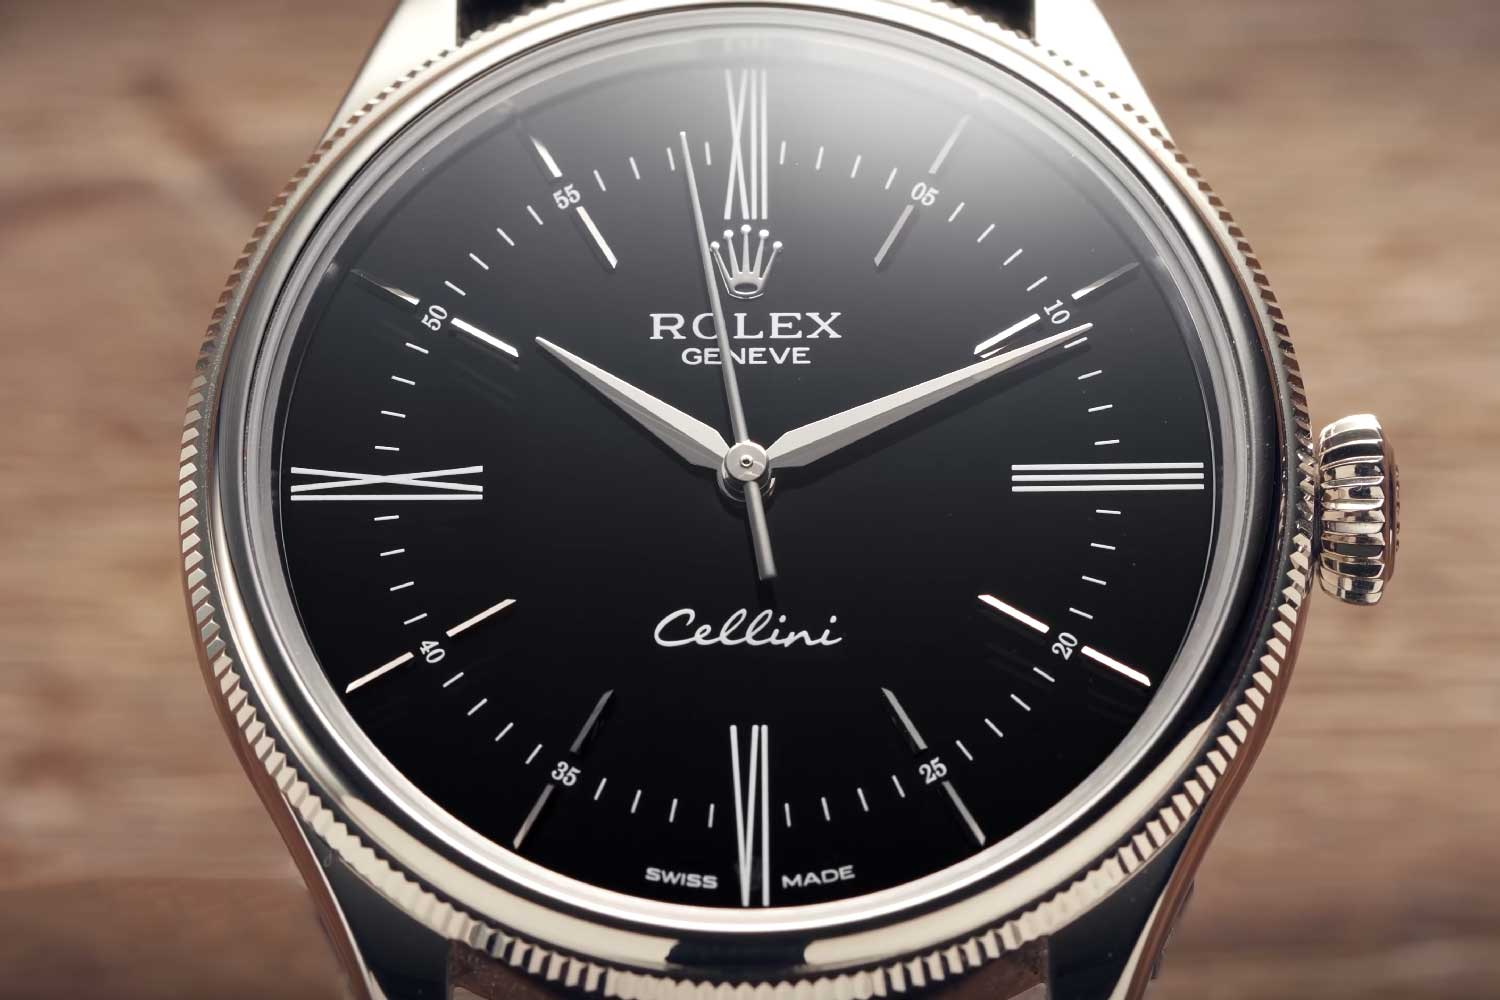 The Cellini has all the hallmarks of the Oyster, for which Rolex has become synonymous - the skinny fluted bezel, the knurled crown and the simple case.